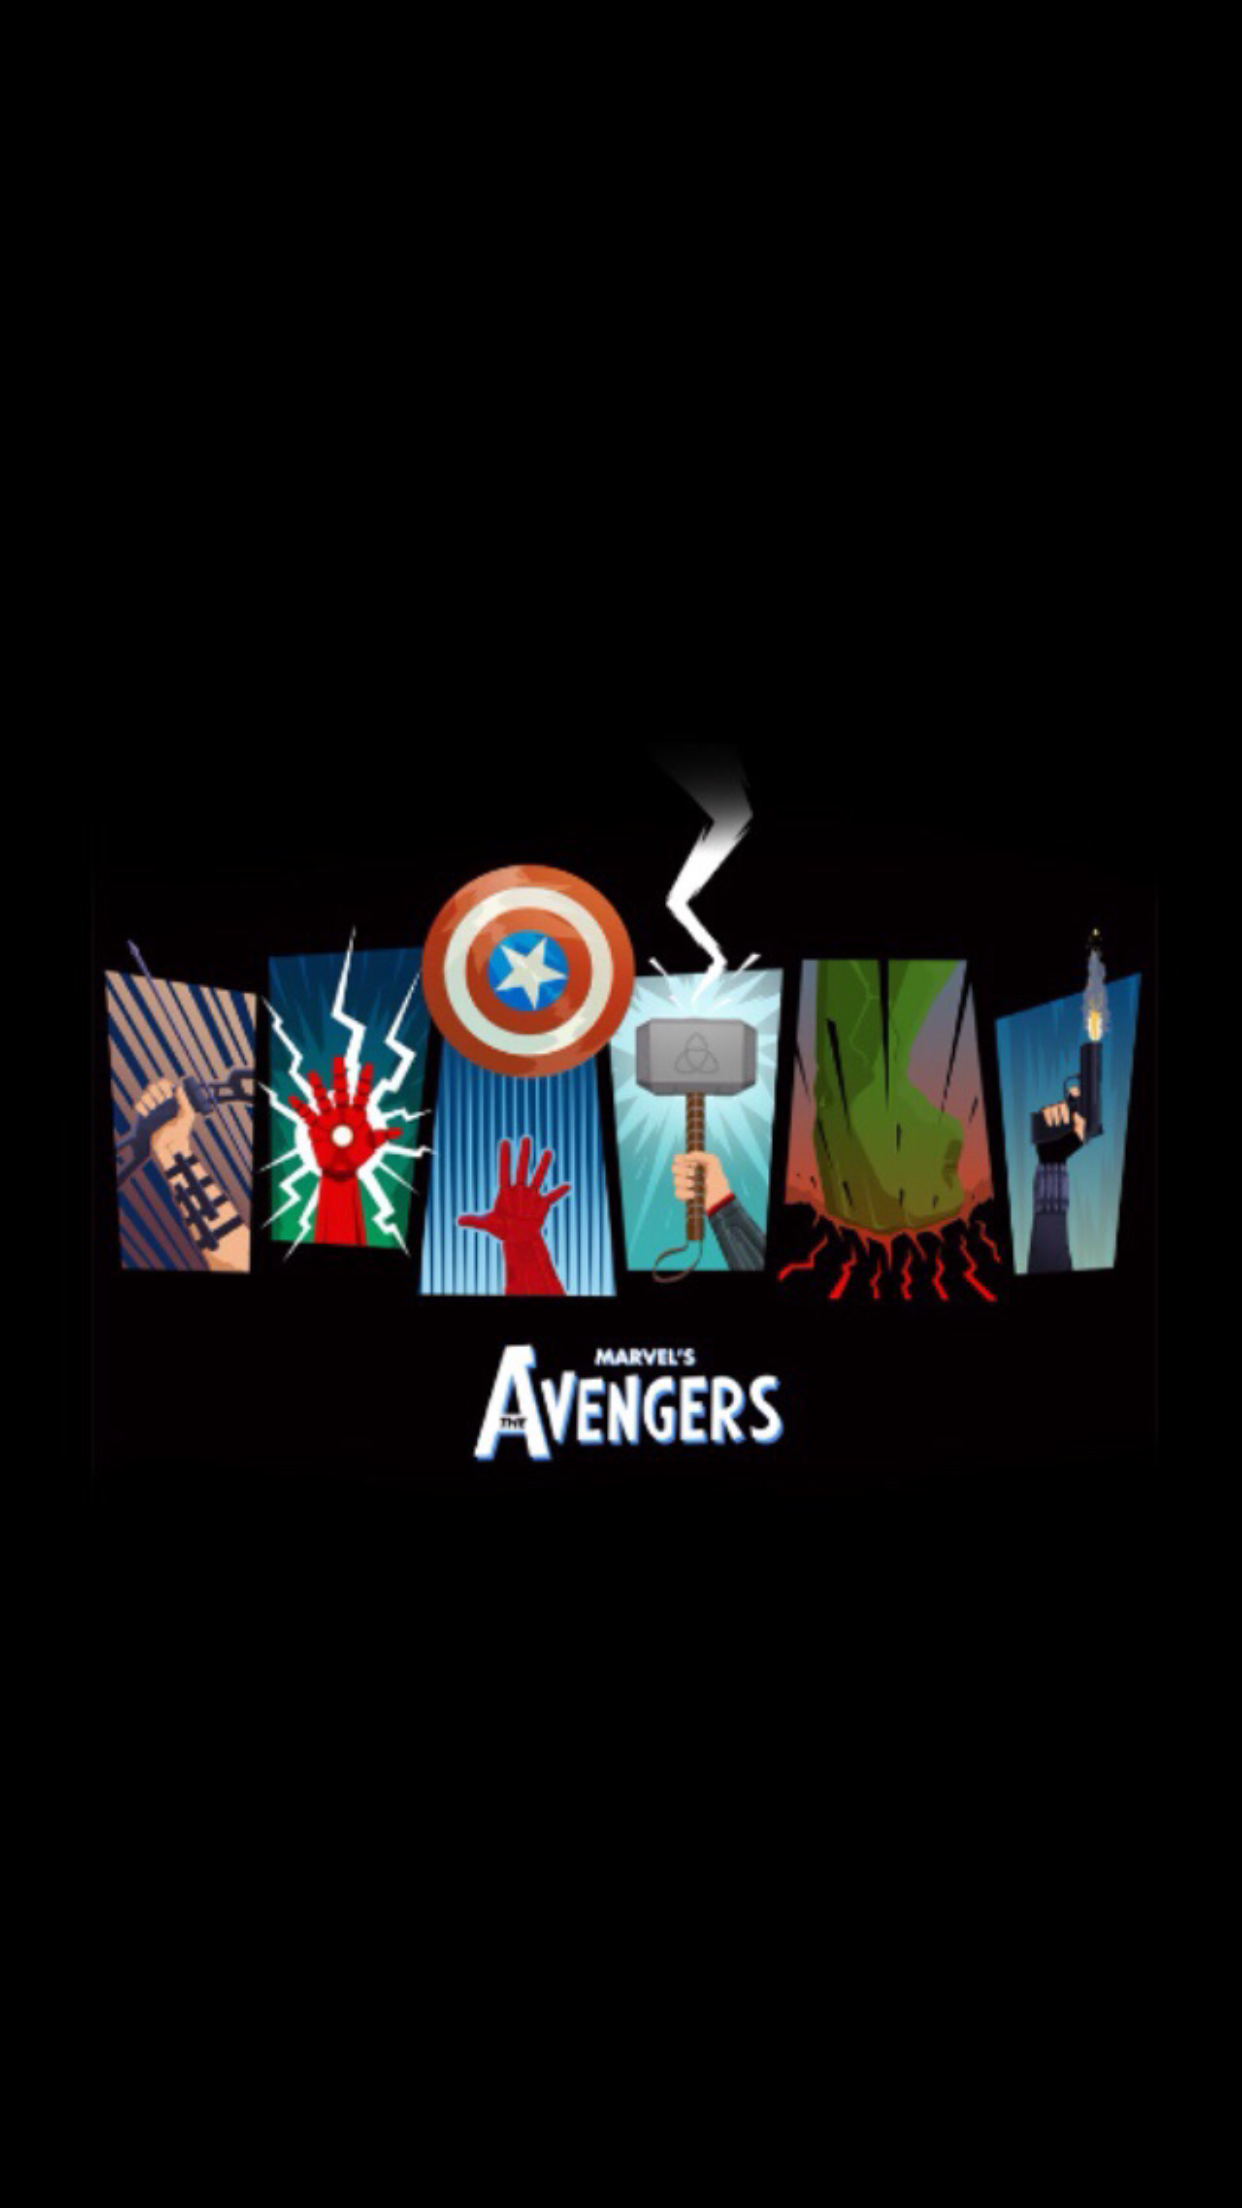 Fantastic Wallpaper Marvel Macbook - ec880698ab826cdb68e6b055f4585d32  Pic_803376.png